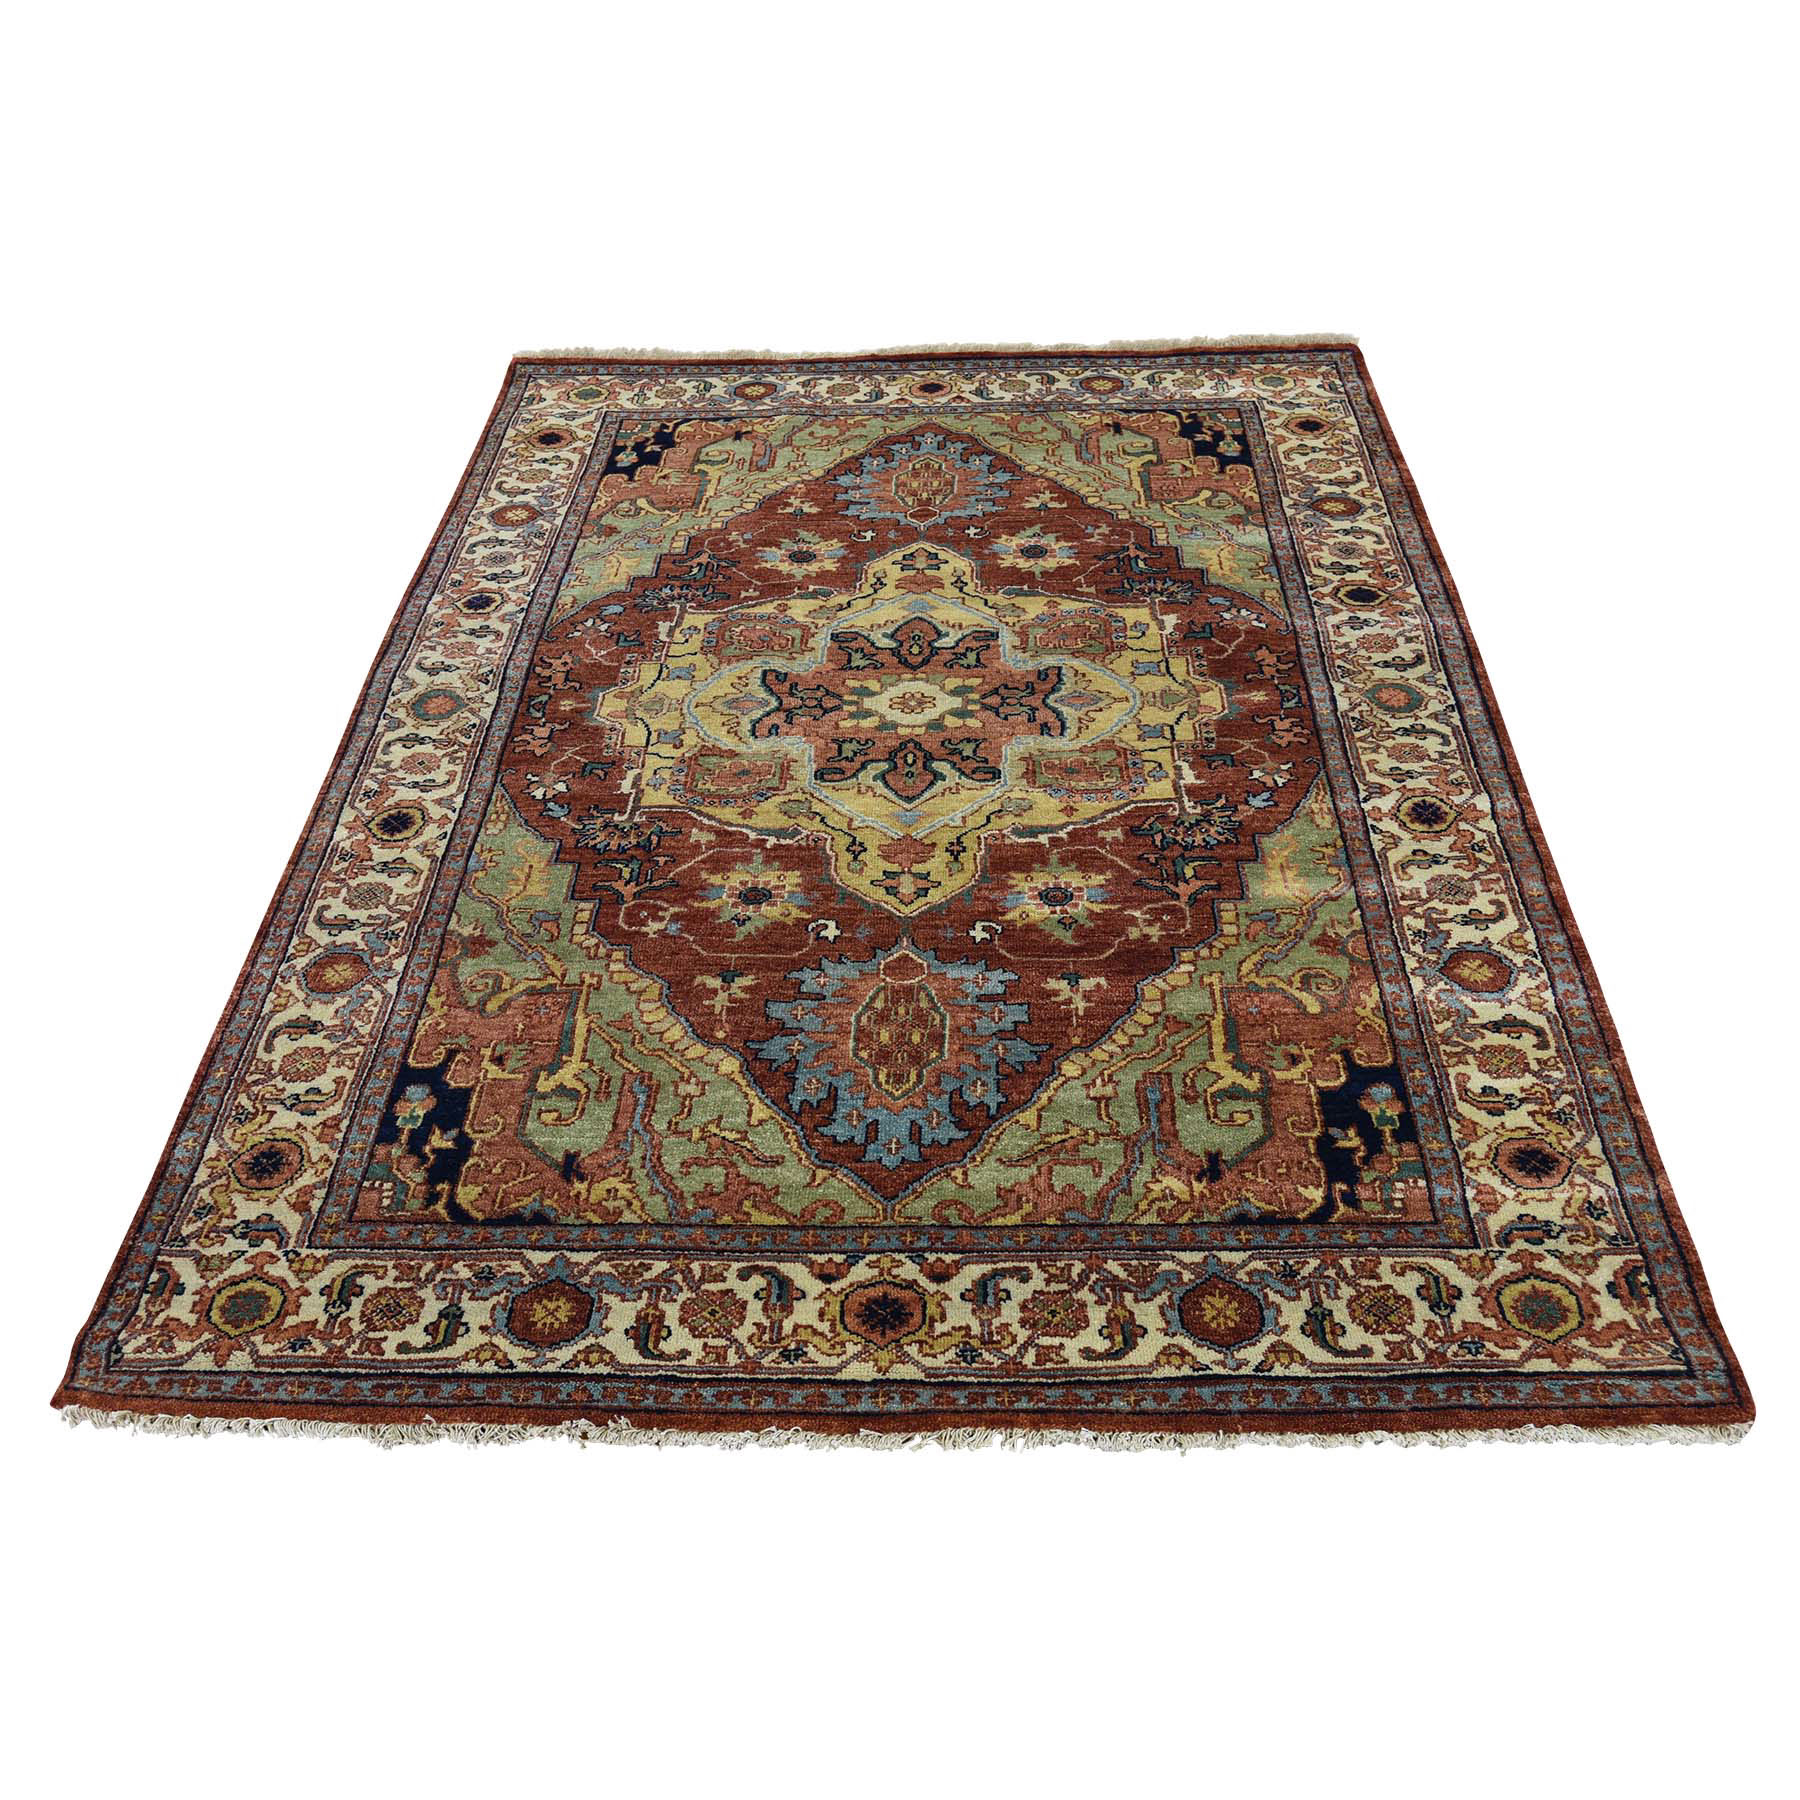 4'1''x6' Hand Woven Pure Wool Antiqued Heriz Re-creation Oriental Rug